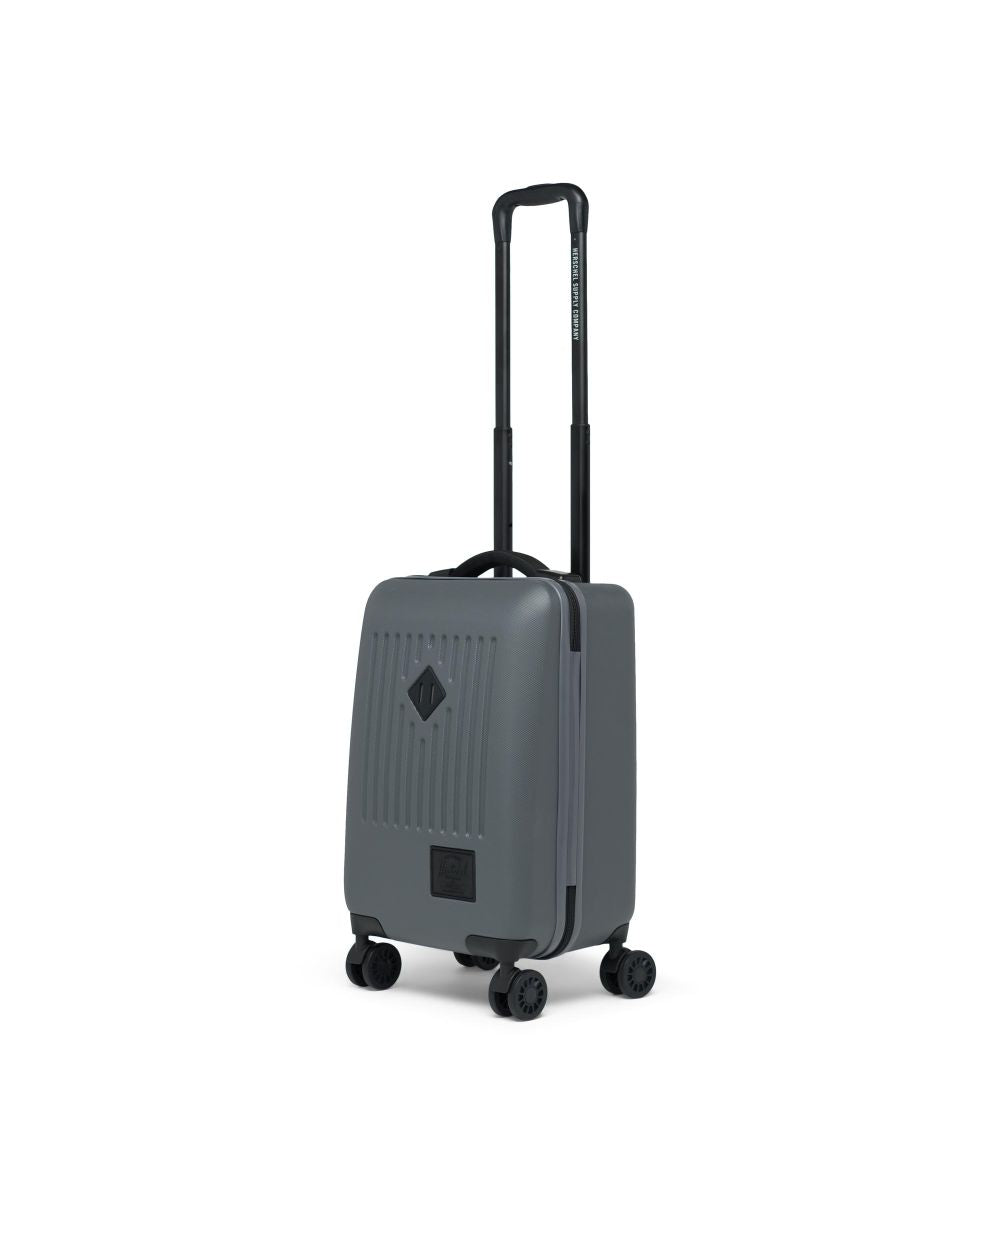 TRADE LUGGAGE CARRY ON - DARK SHADOW